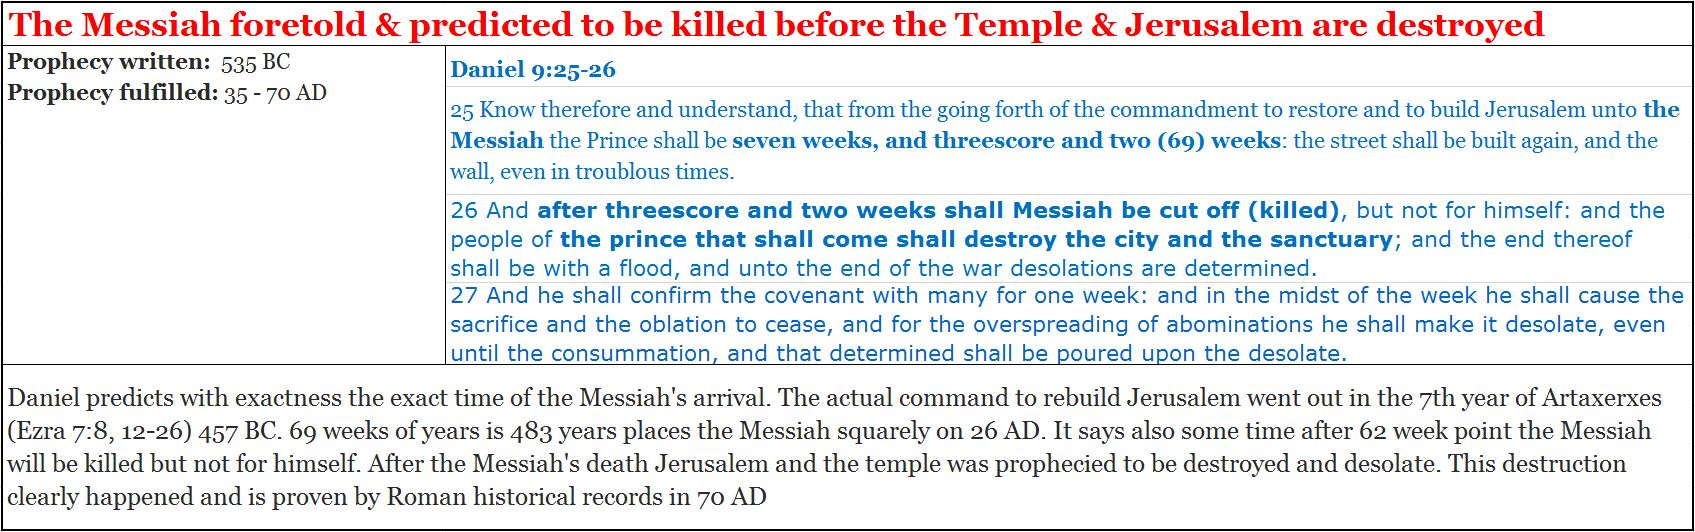 Again the Bible proves its as the Word of Almighty God, by its 100%  fulfillment of precise prophecies given hundreds of years before.